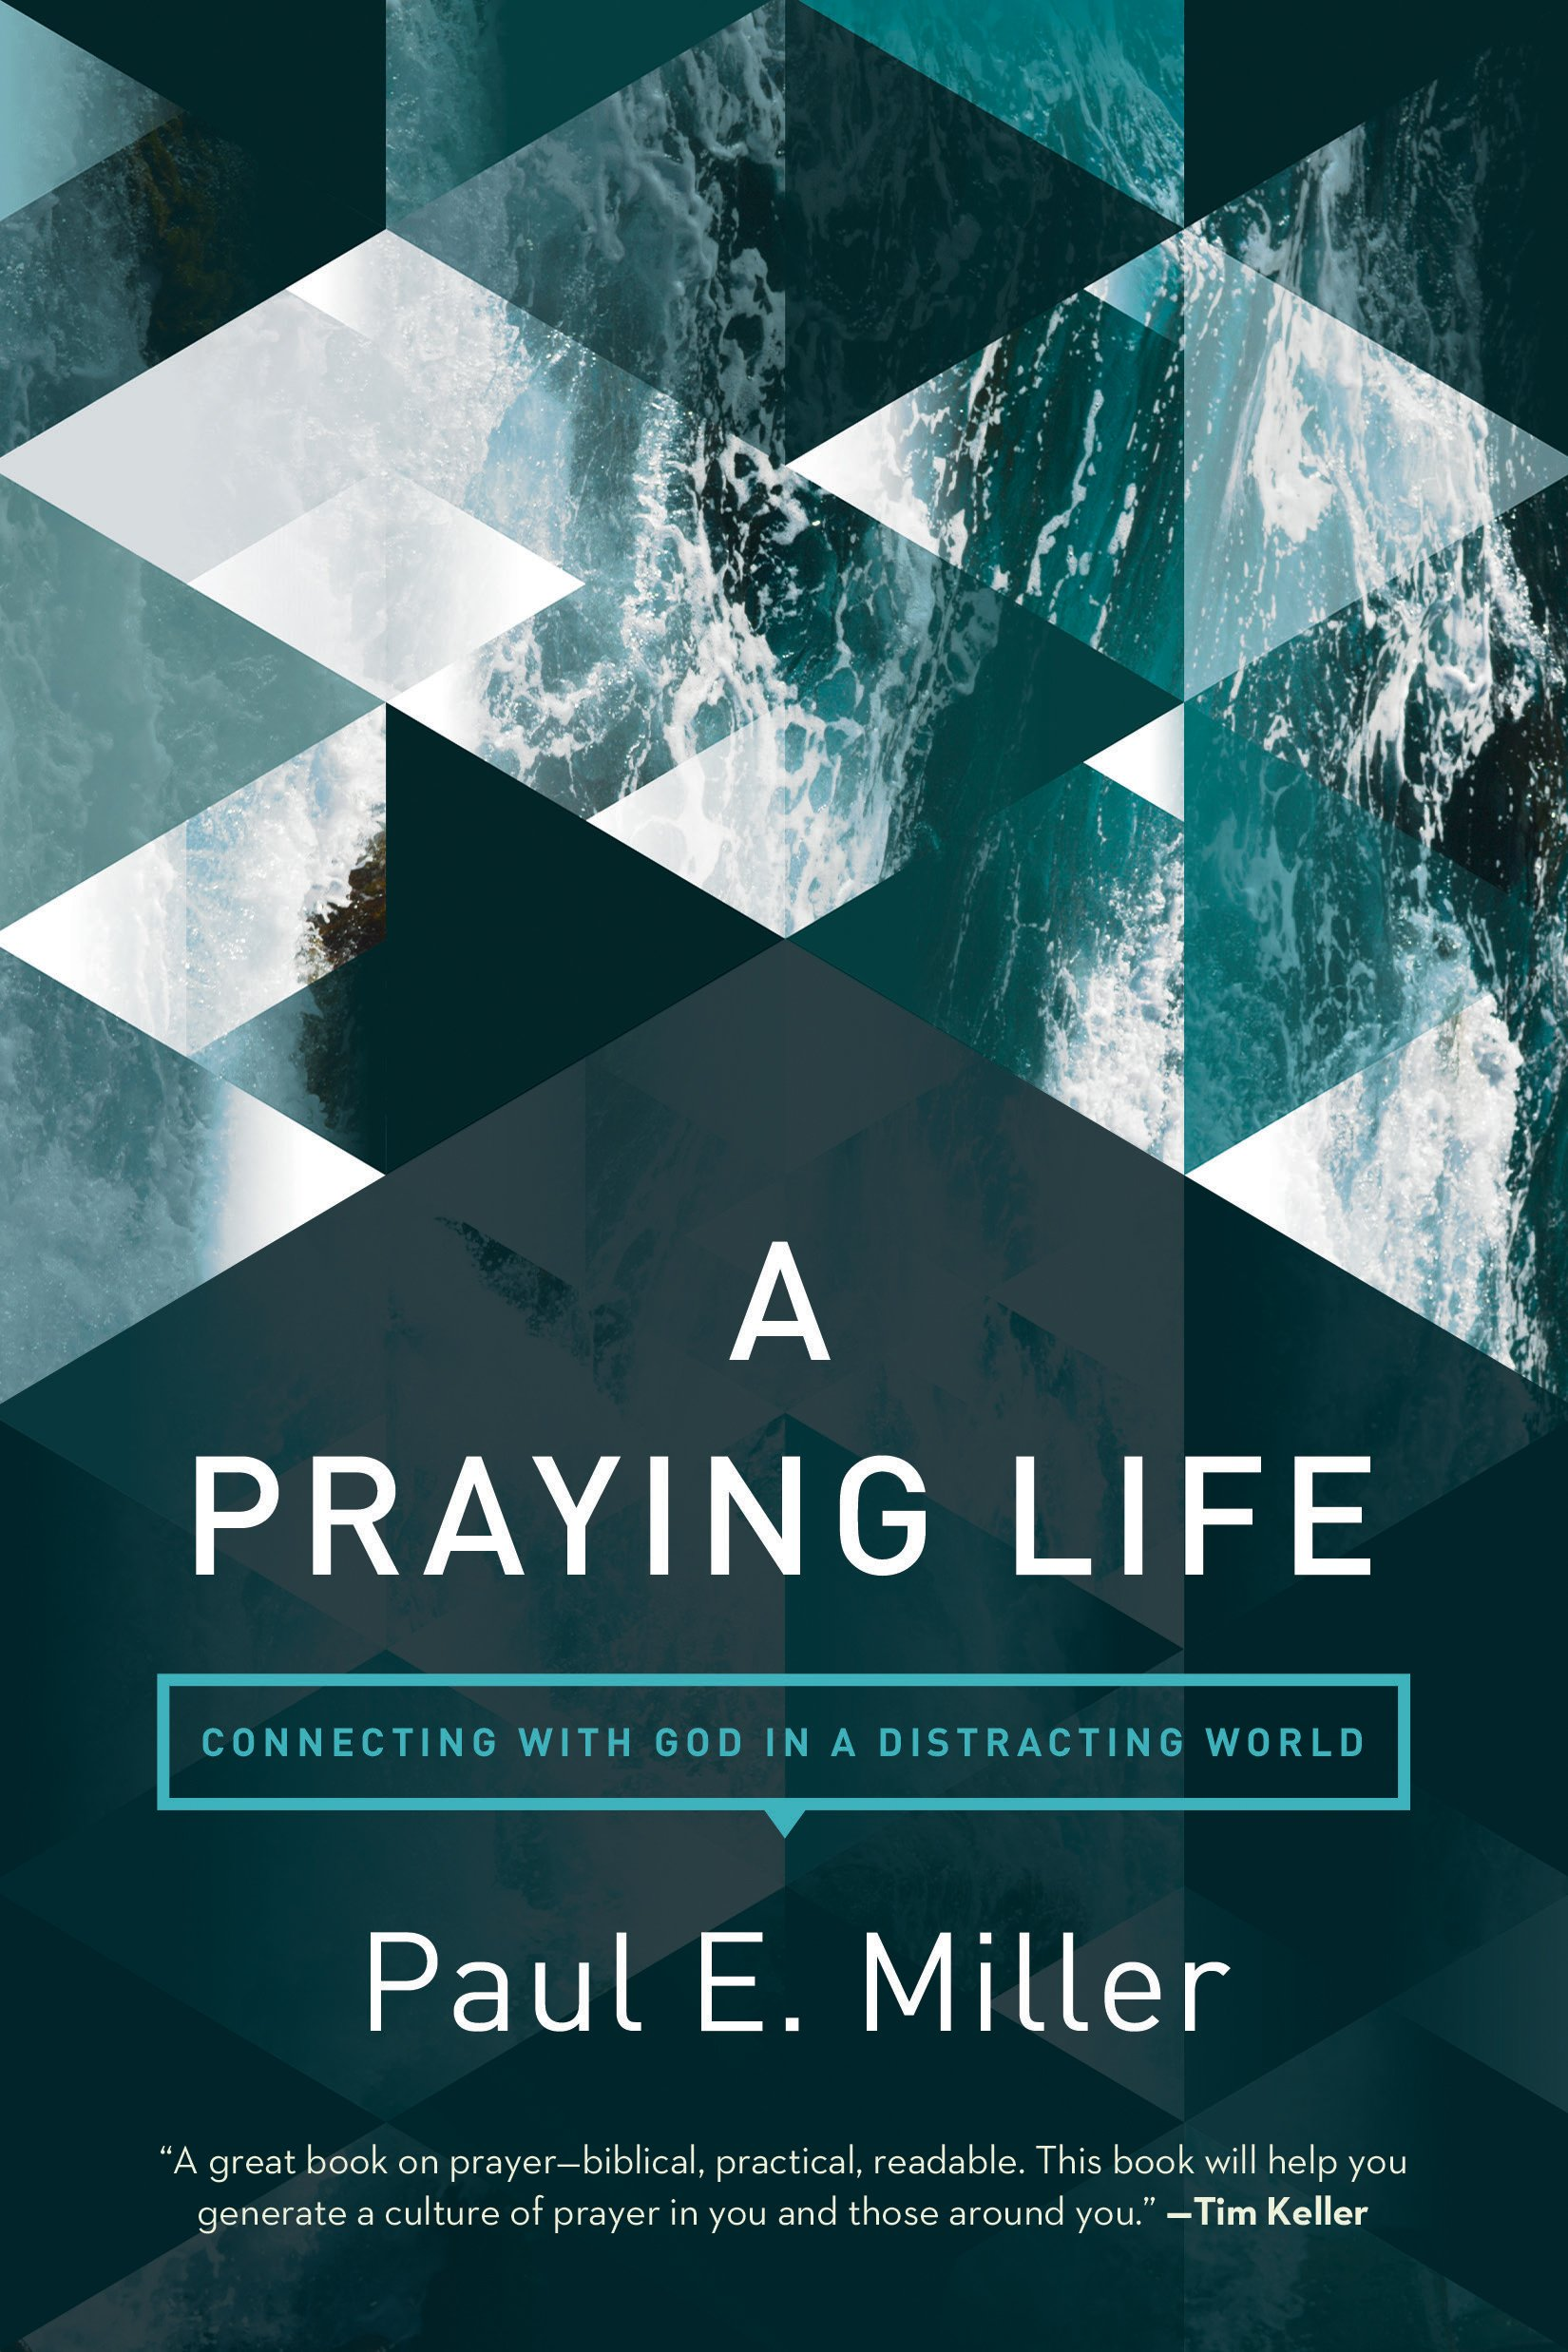 A Praying Life Image.jpg